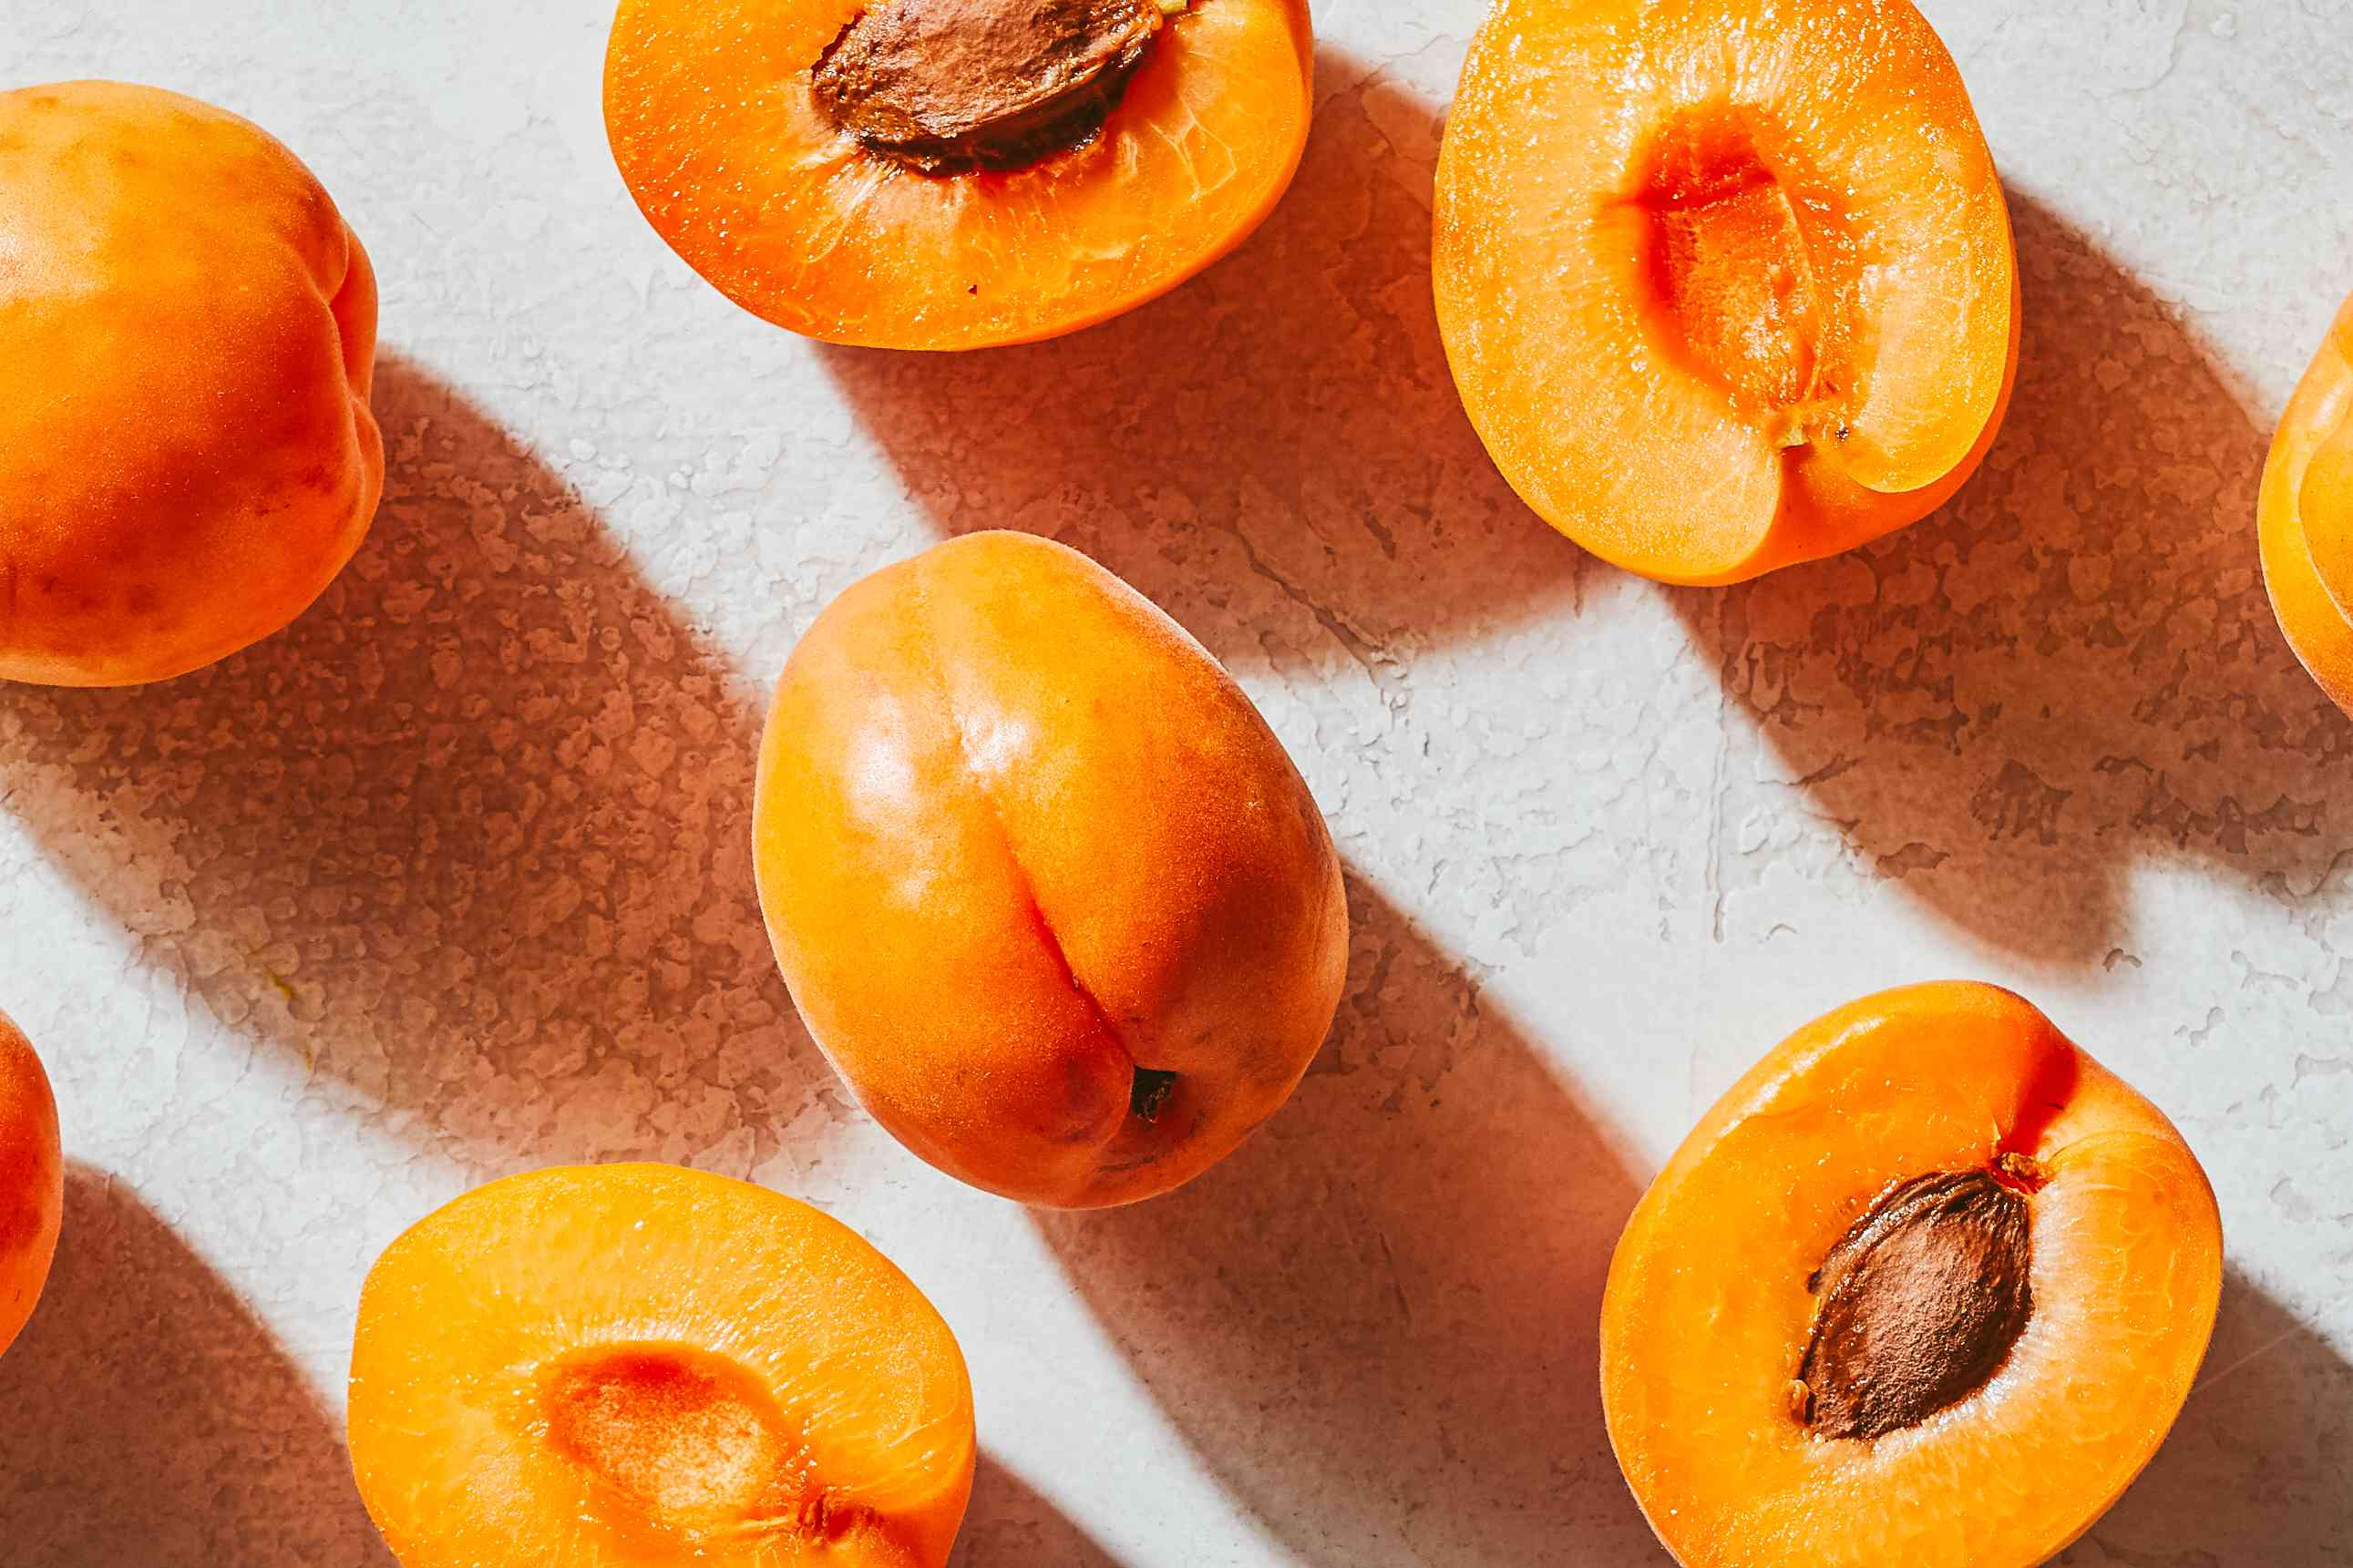 ripe apricots cut to show stone scattered on textured white surface